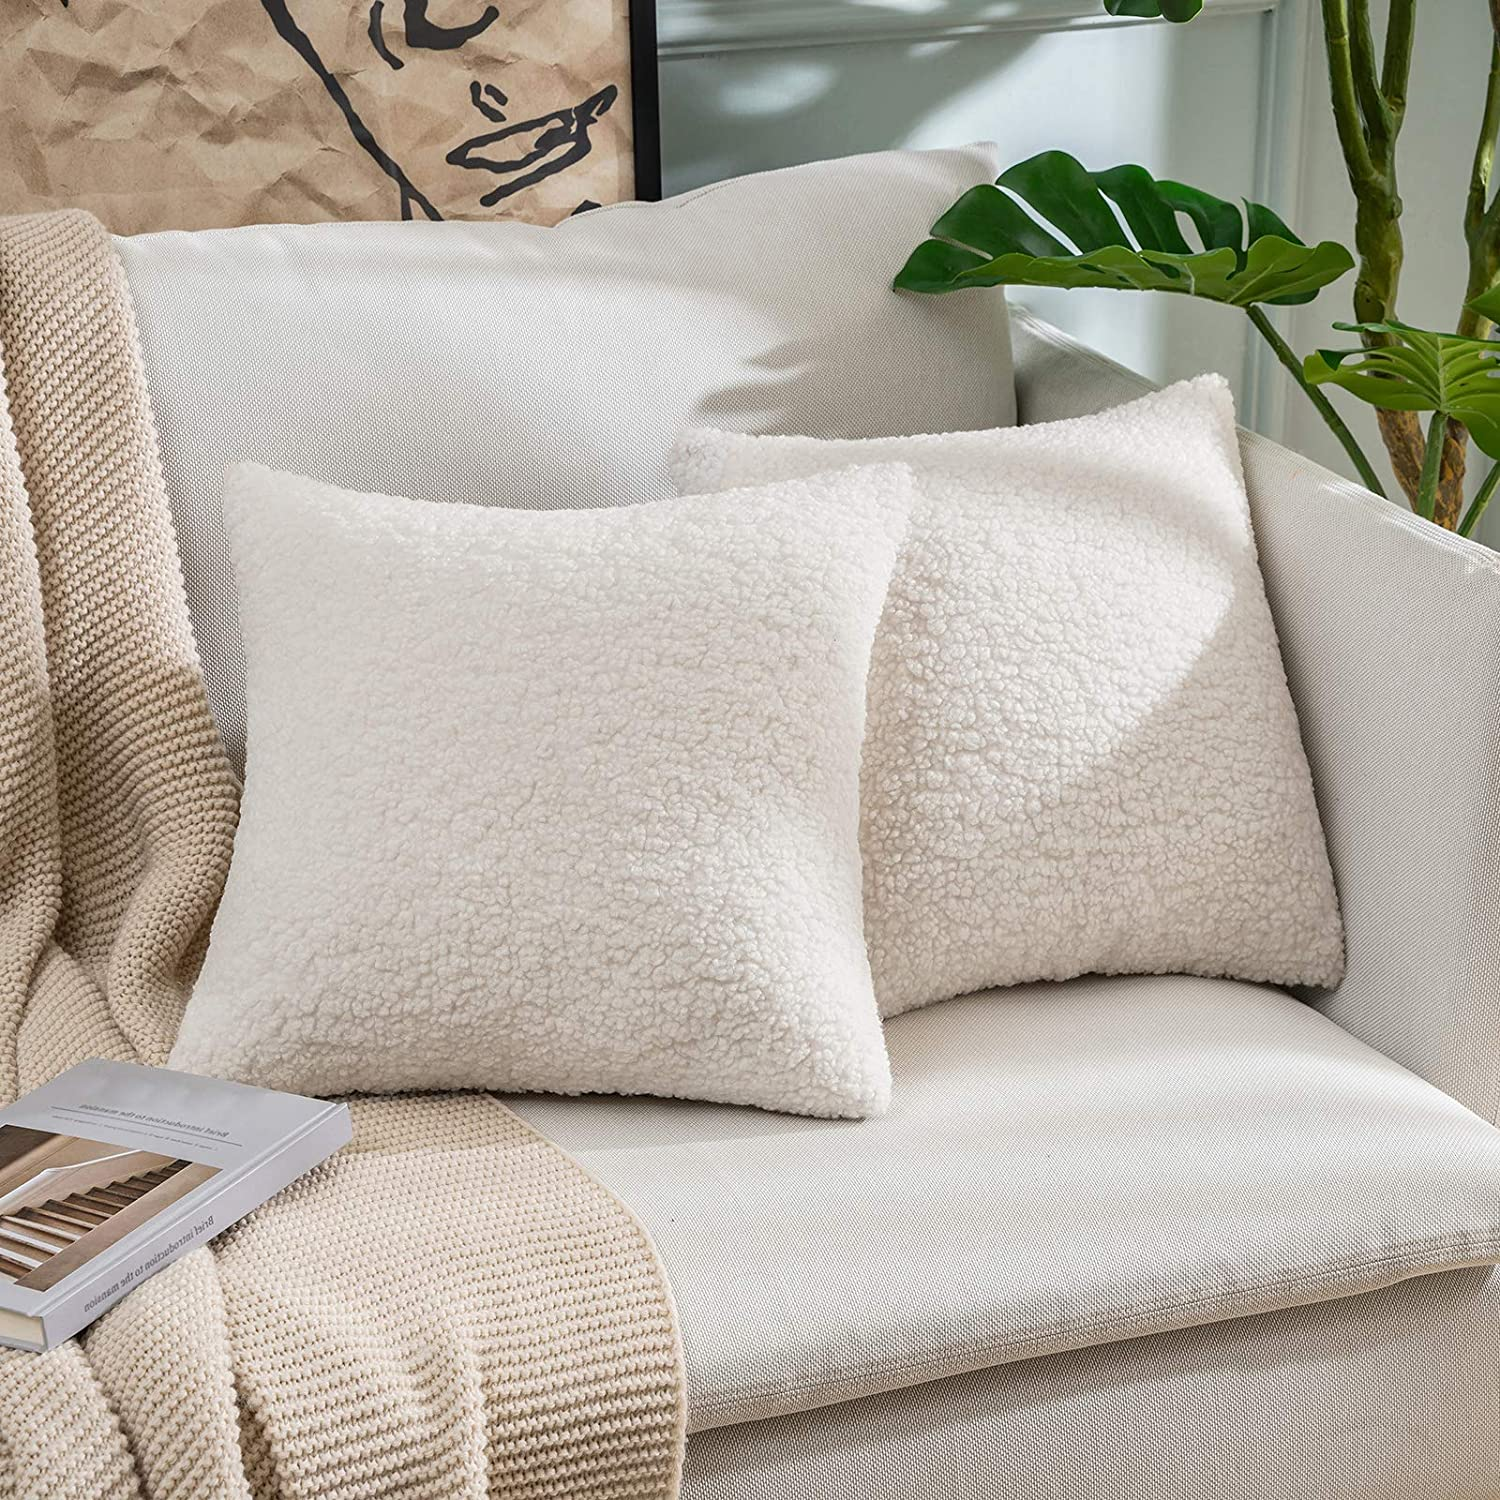 miulee pack of 2 decorative new luxury series style cream white faux fur throw pillow covers super soft wool pillow cases cushion covers for sofa